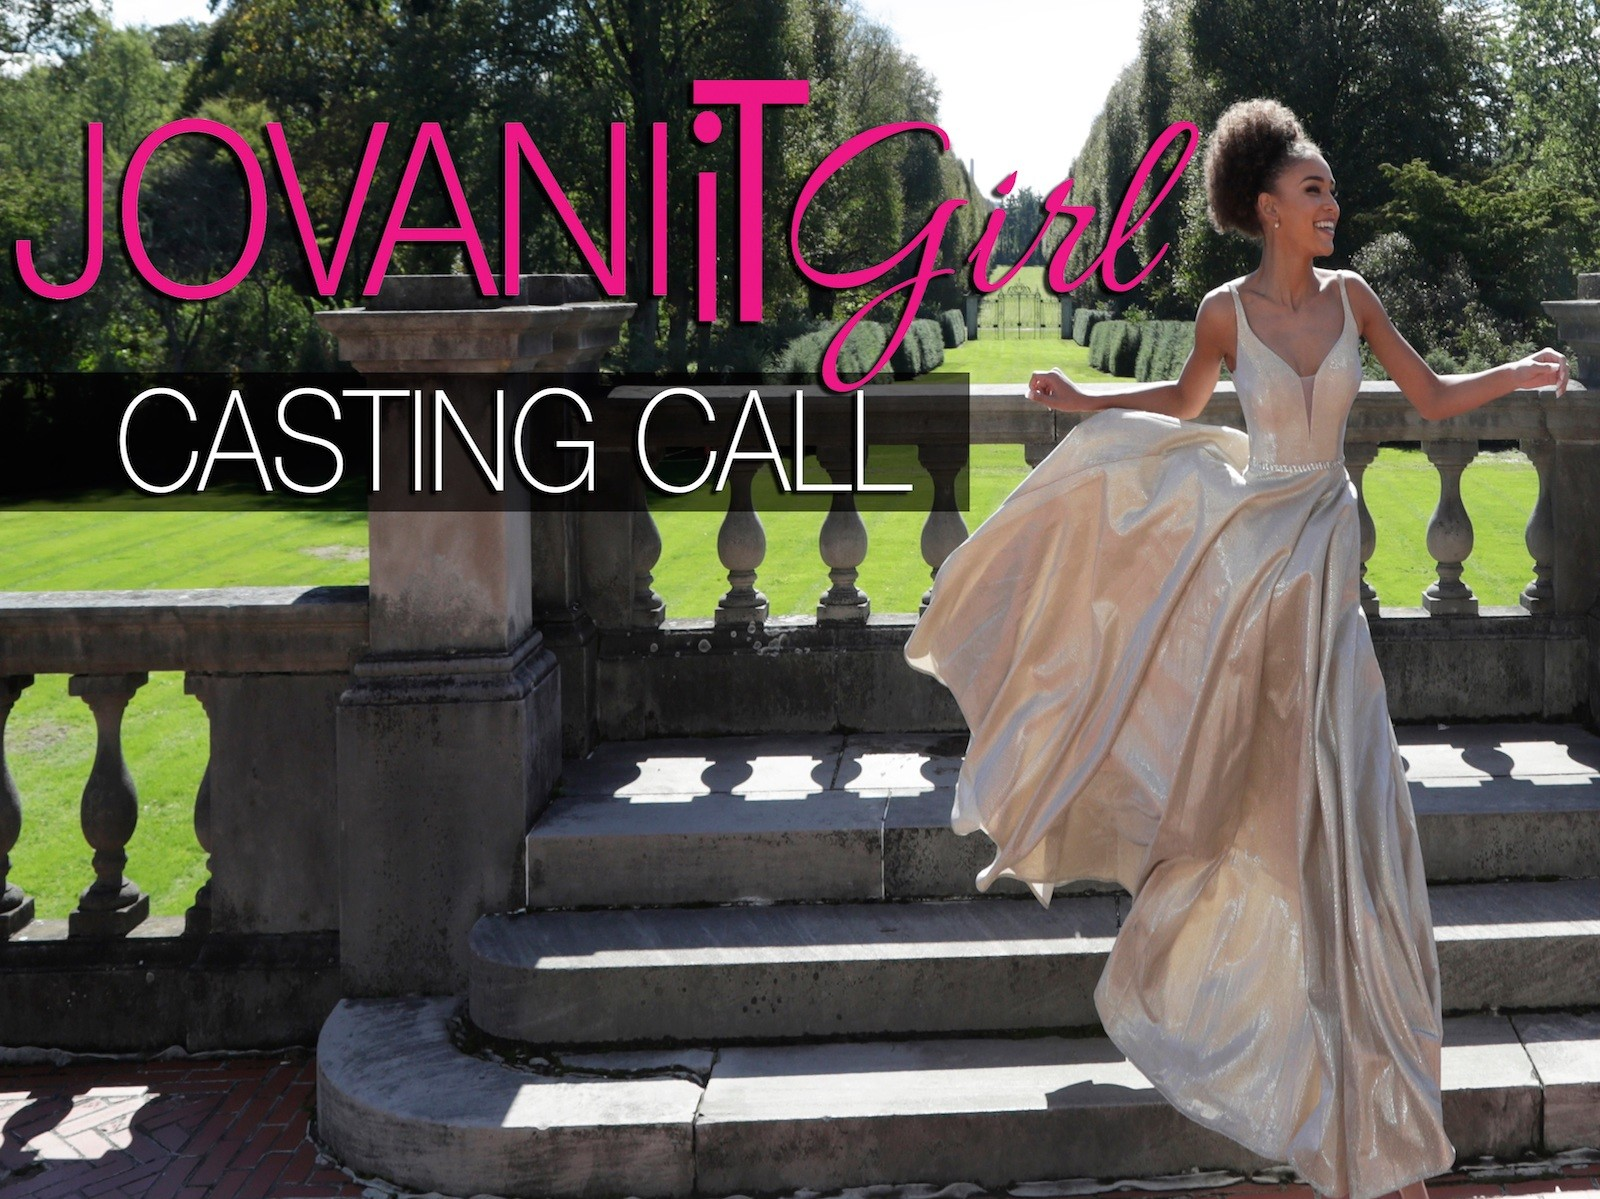 d6d037c922 Jovani is selecting 25 contestants for their Spring edition of the JOVANI  It Girl contest.